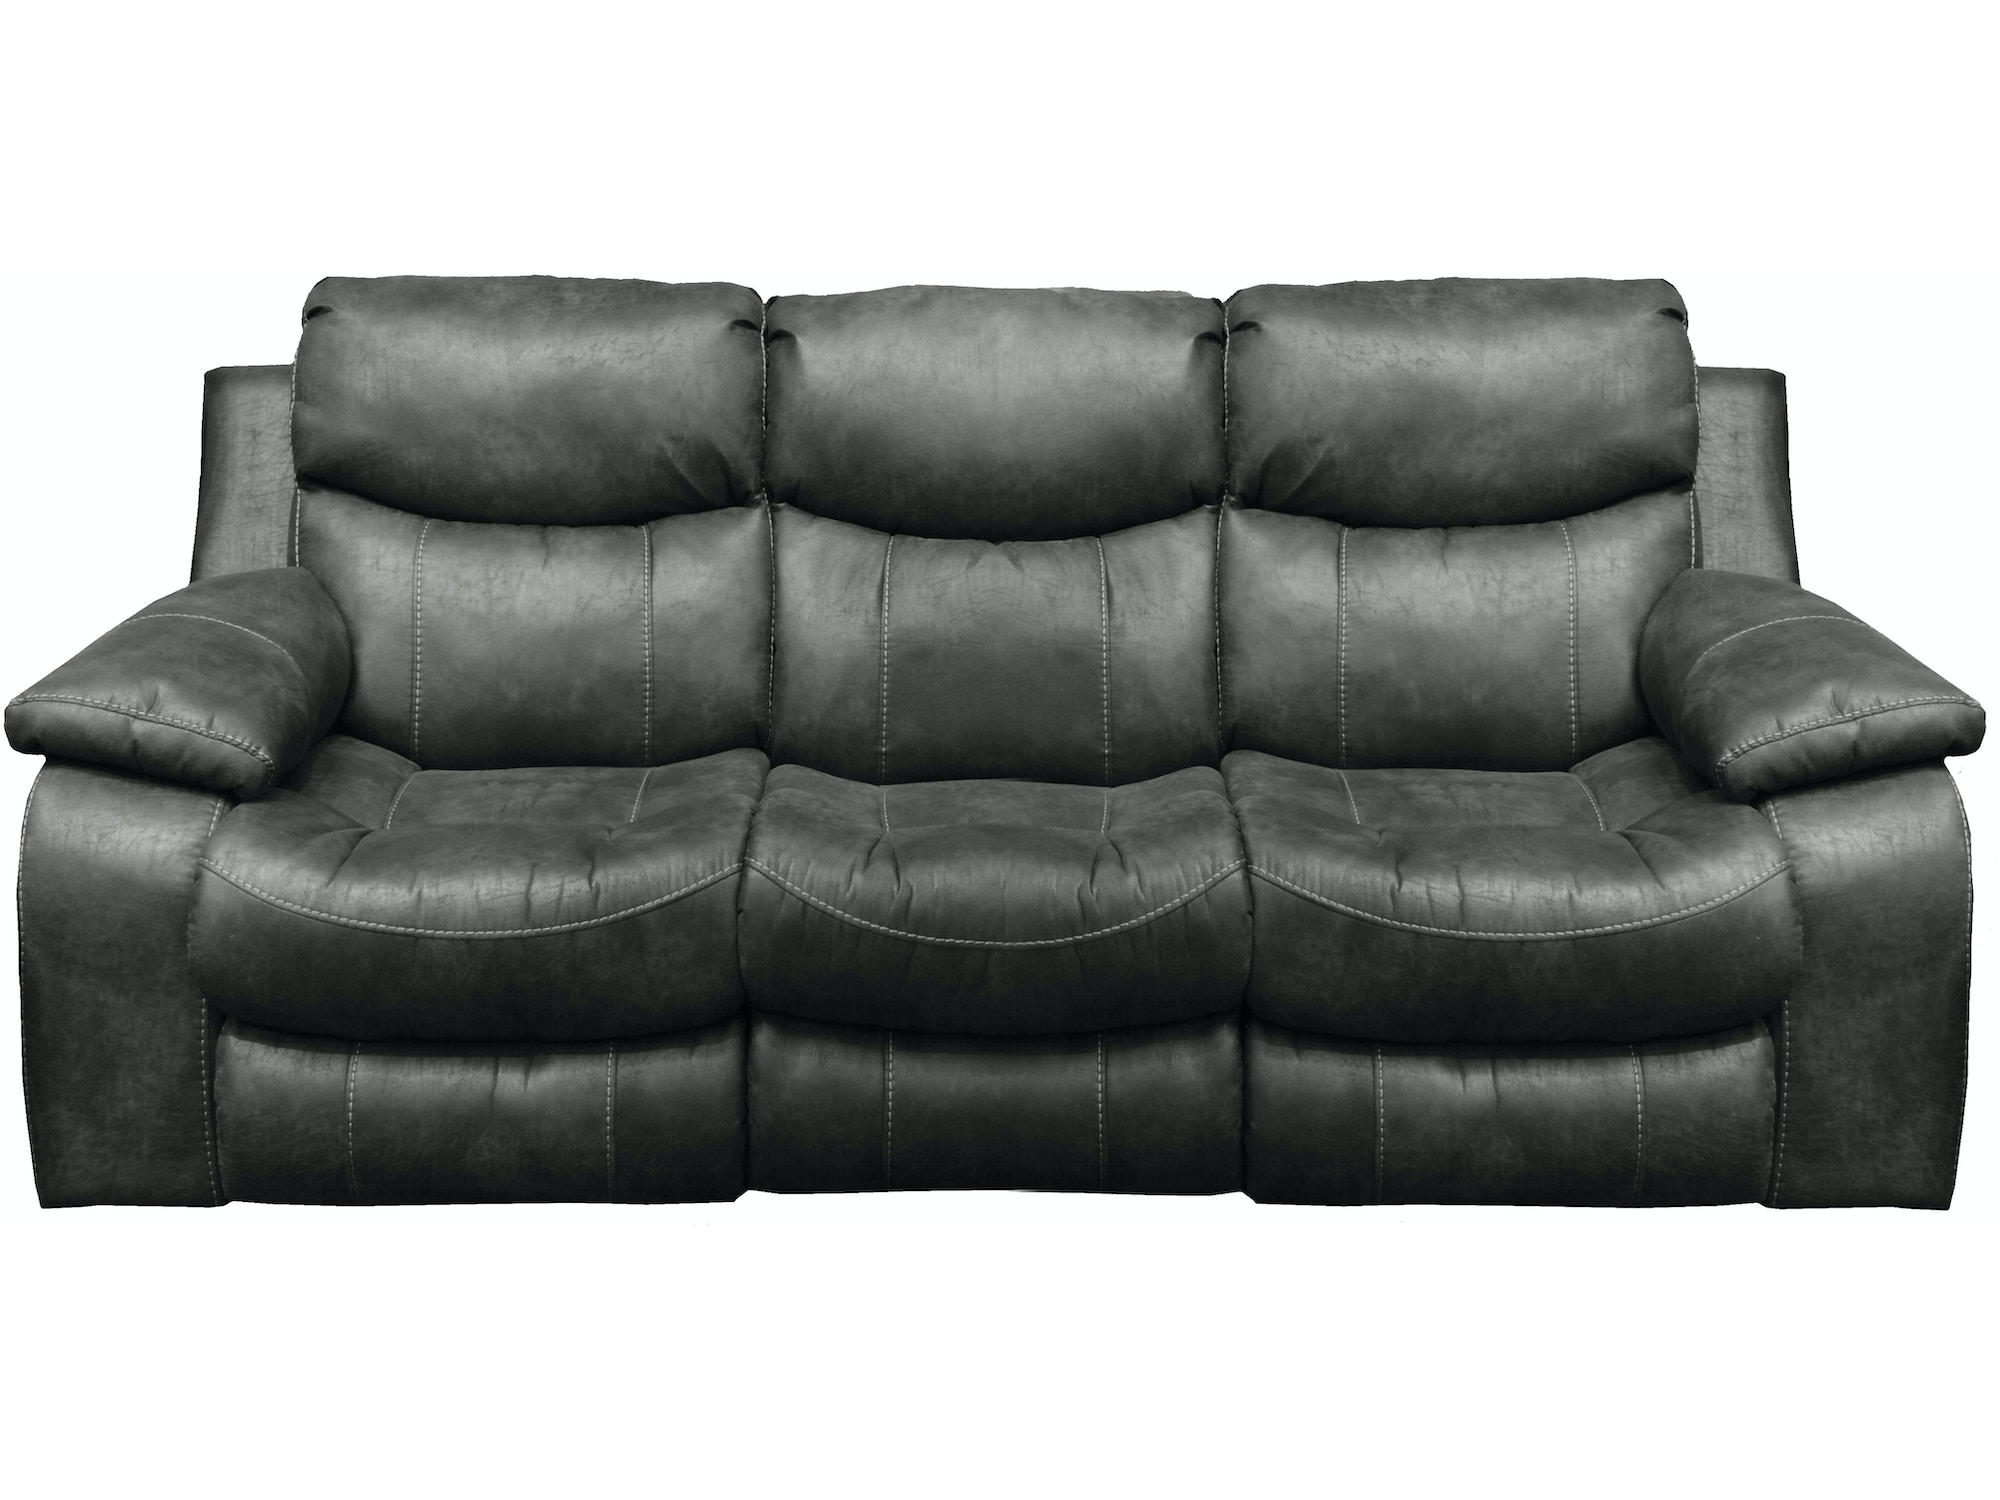 Catalina Reclining Sofa 720435